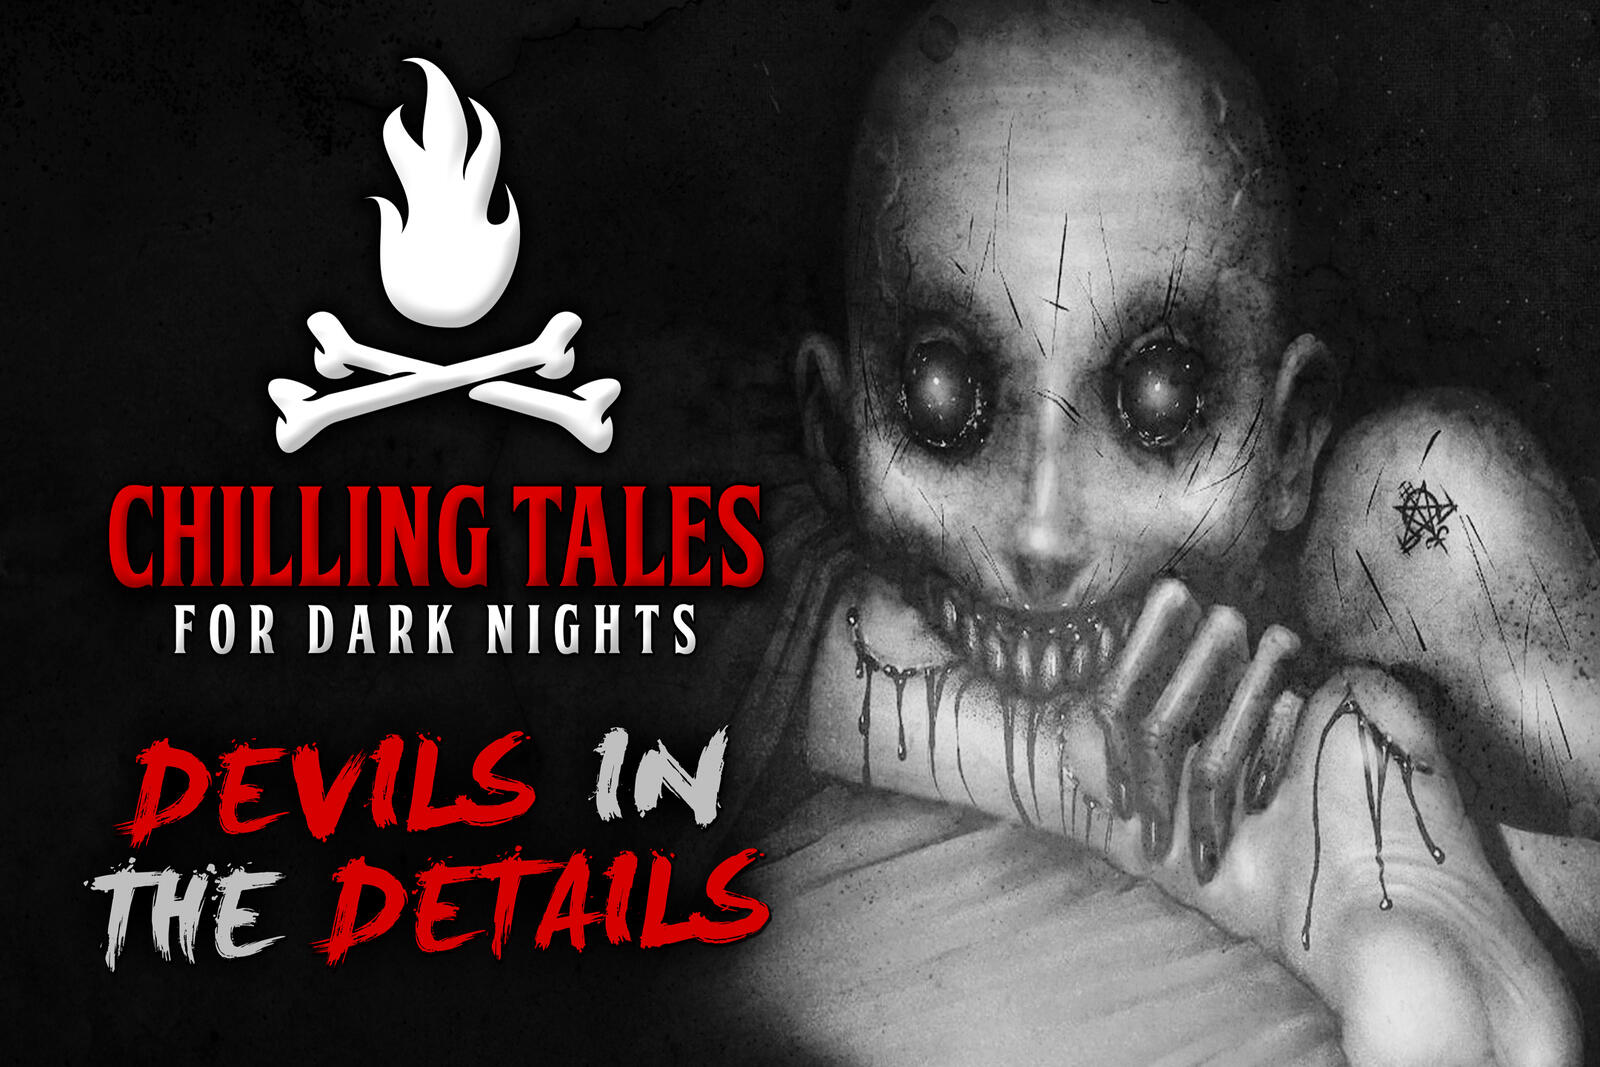 5: Devils in the Details – Chilling Tales for Dark Nights